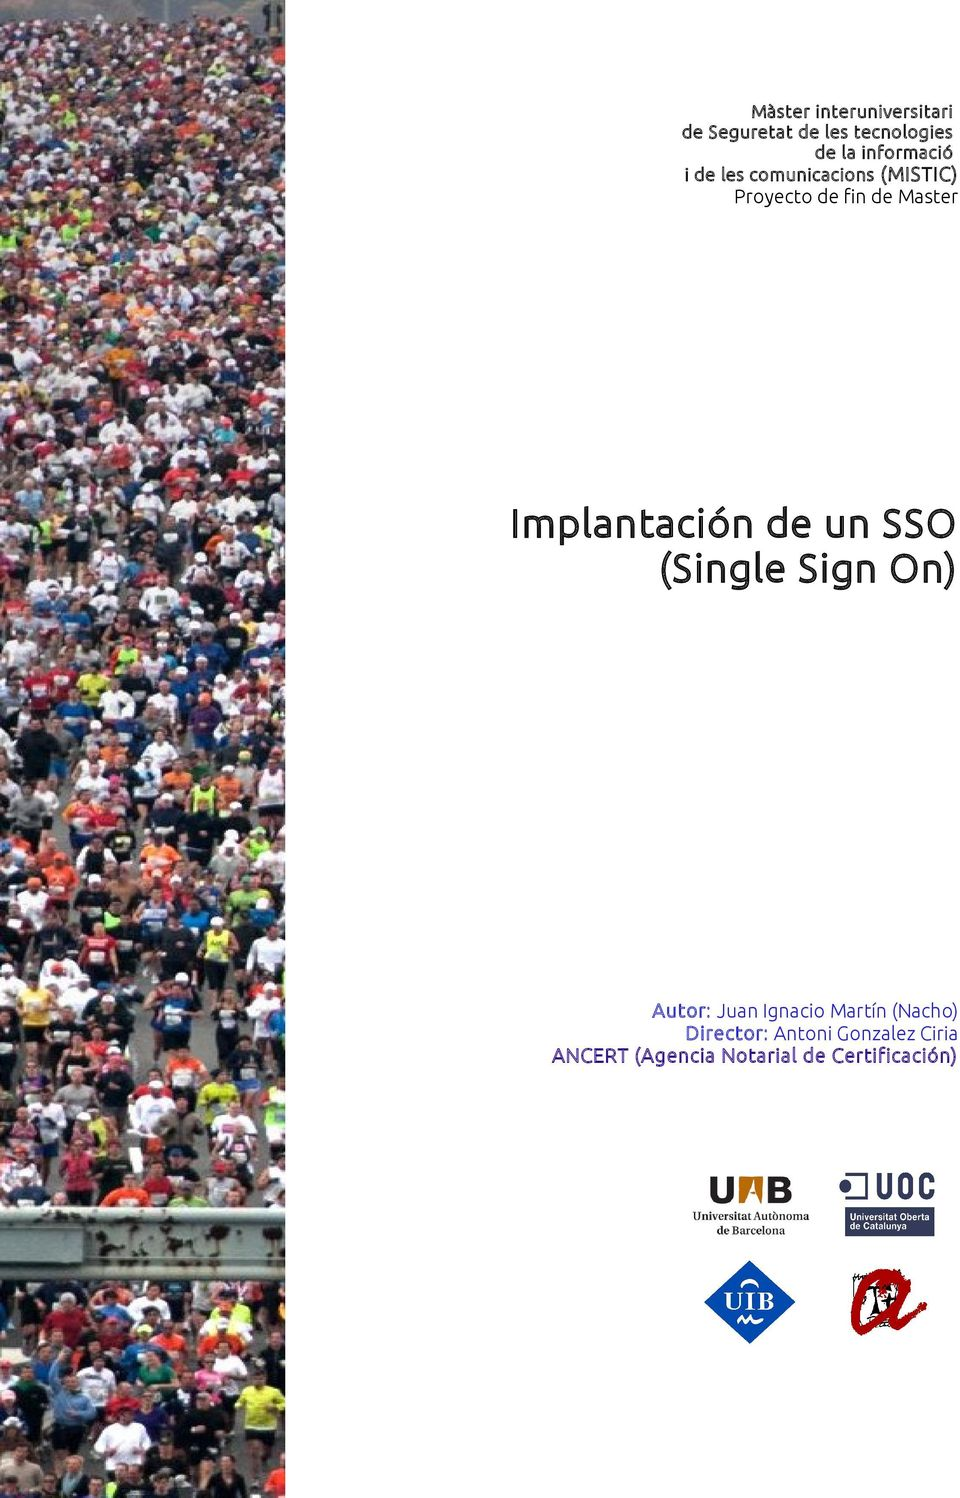 Implantación de un SSO (Single Sign On) Autor: Juan Ignacio Martín